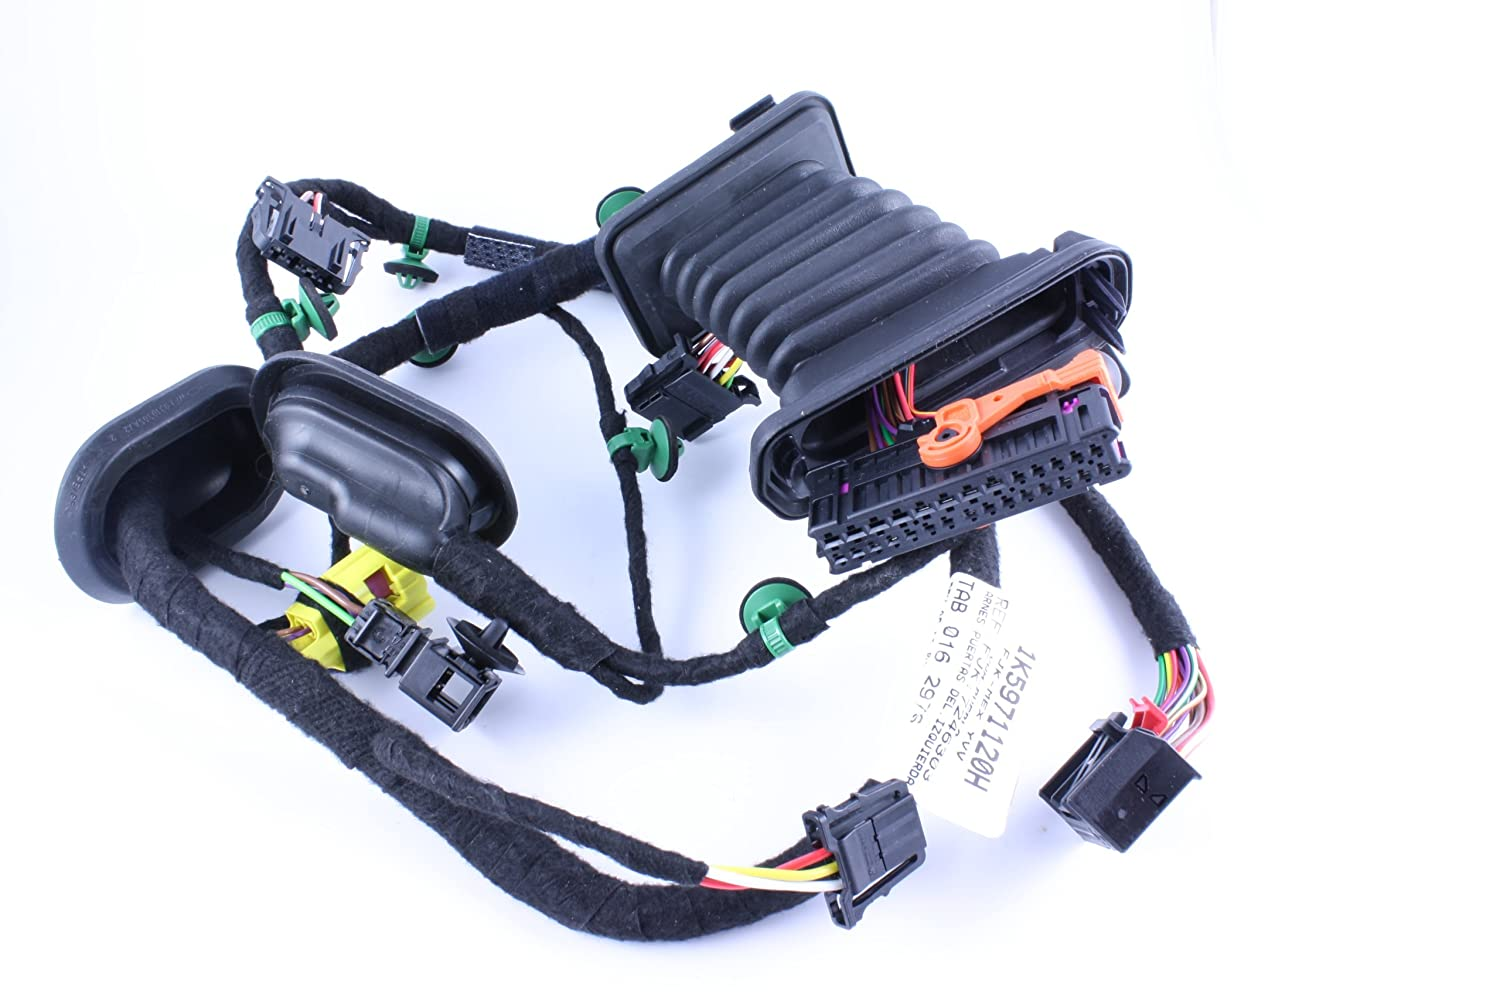 81nbhs5WbzL._SL1500_ amazon com genuine volkswagen drivers side door harness 1k5 971 2006 vw jetta driver's side door wiring harness at n-0.co